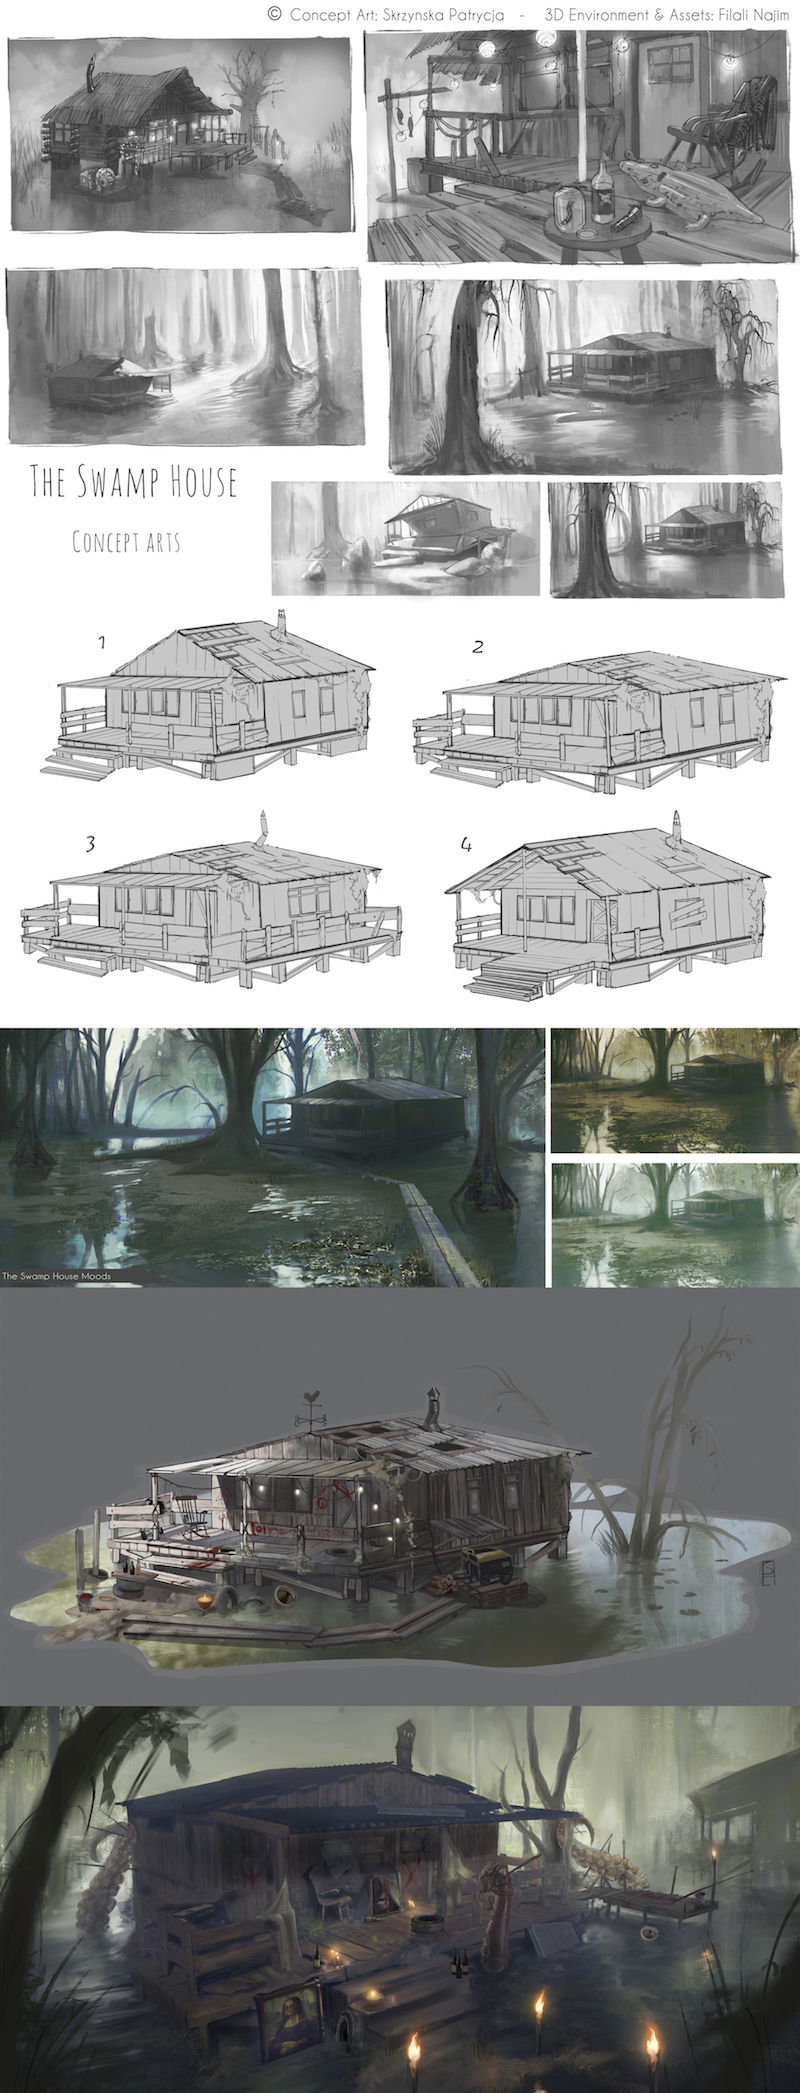 The swamp house